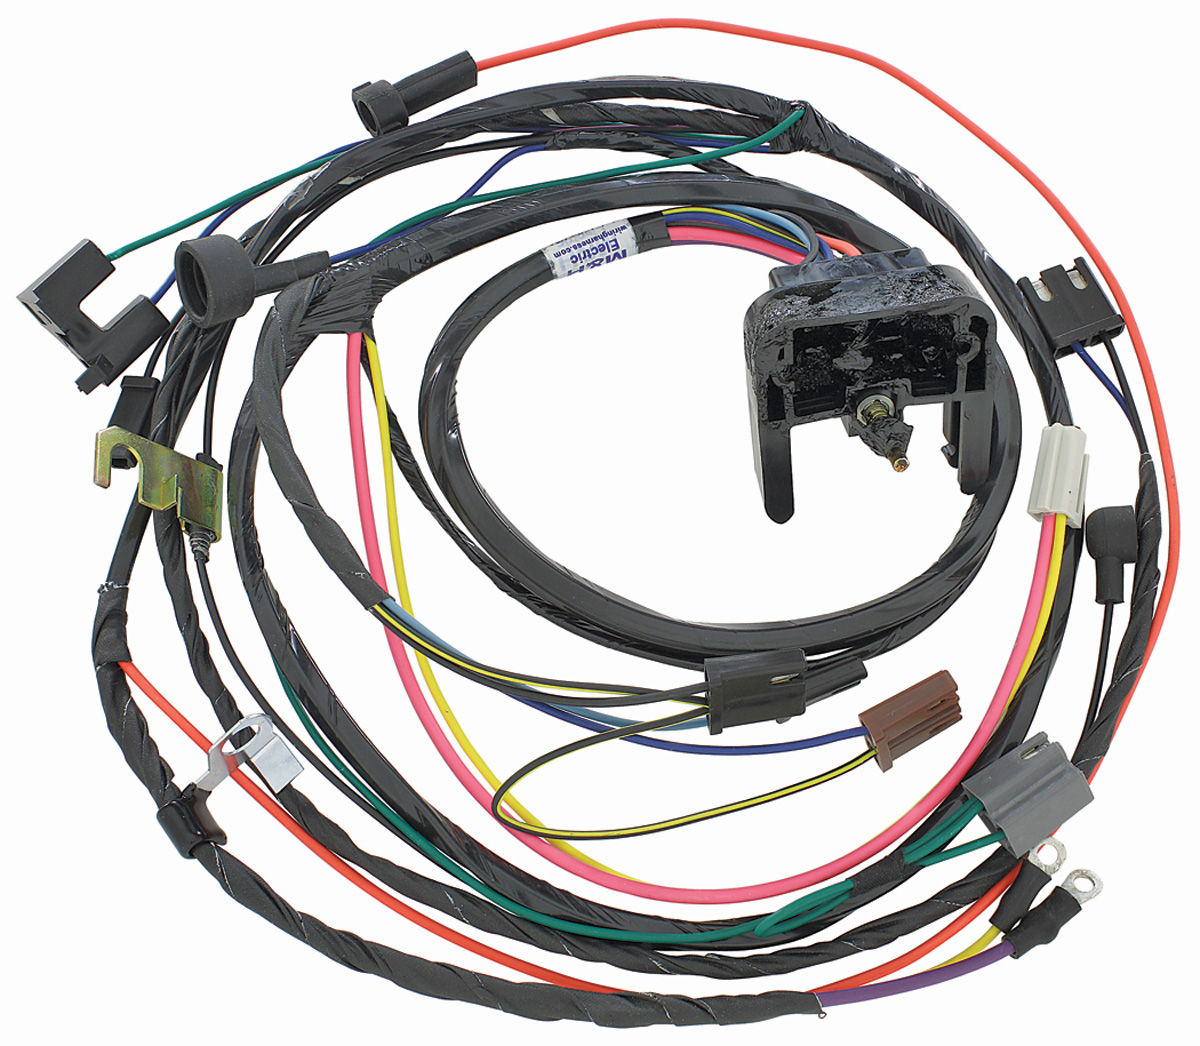 hight resolution of 1970 gto engine wiring harness wiring diagram list 1970 gto wiring harness 1970 gto wiring harness